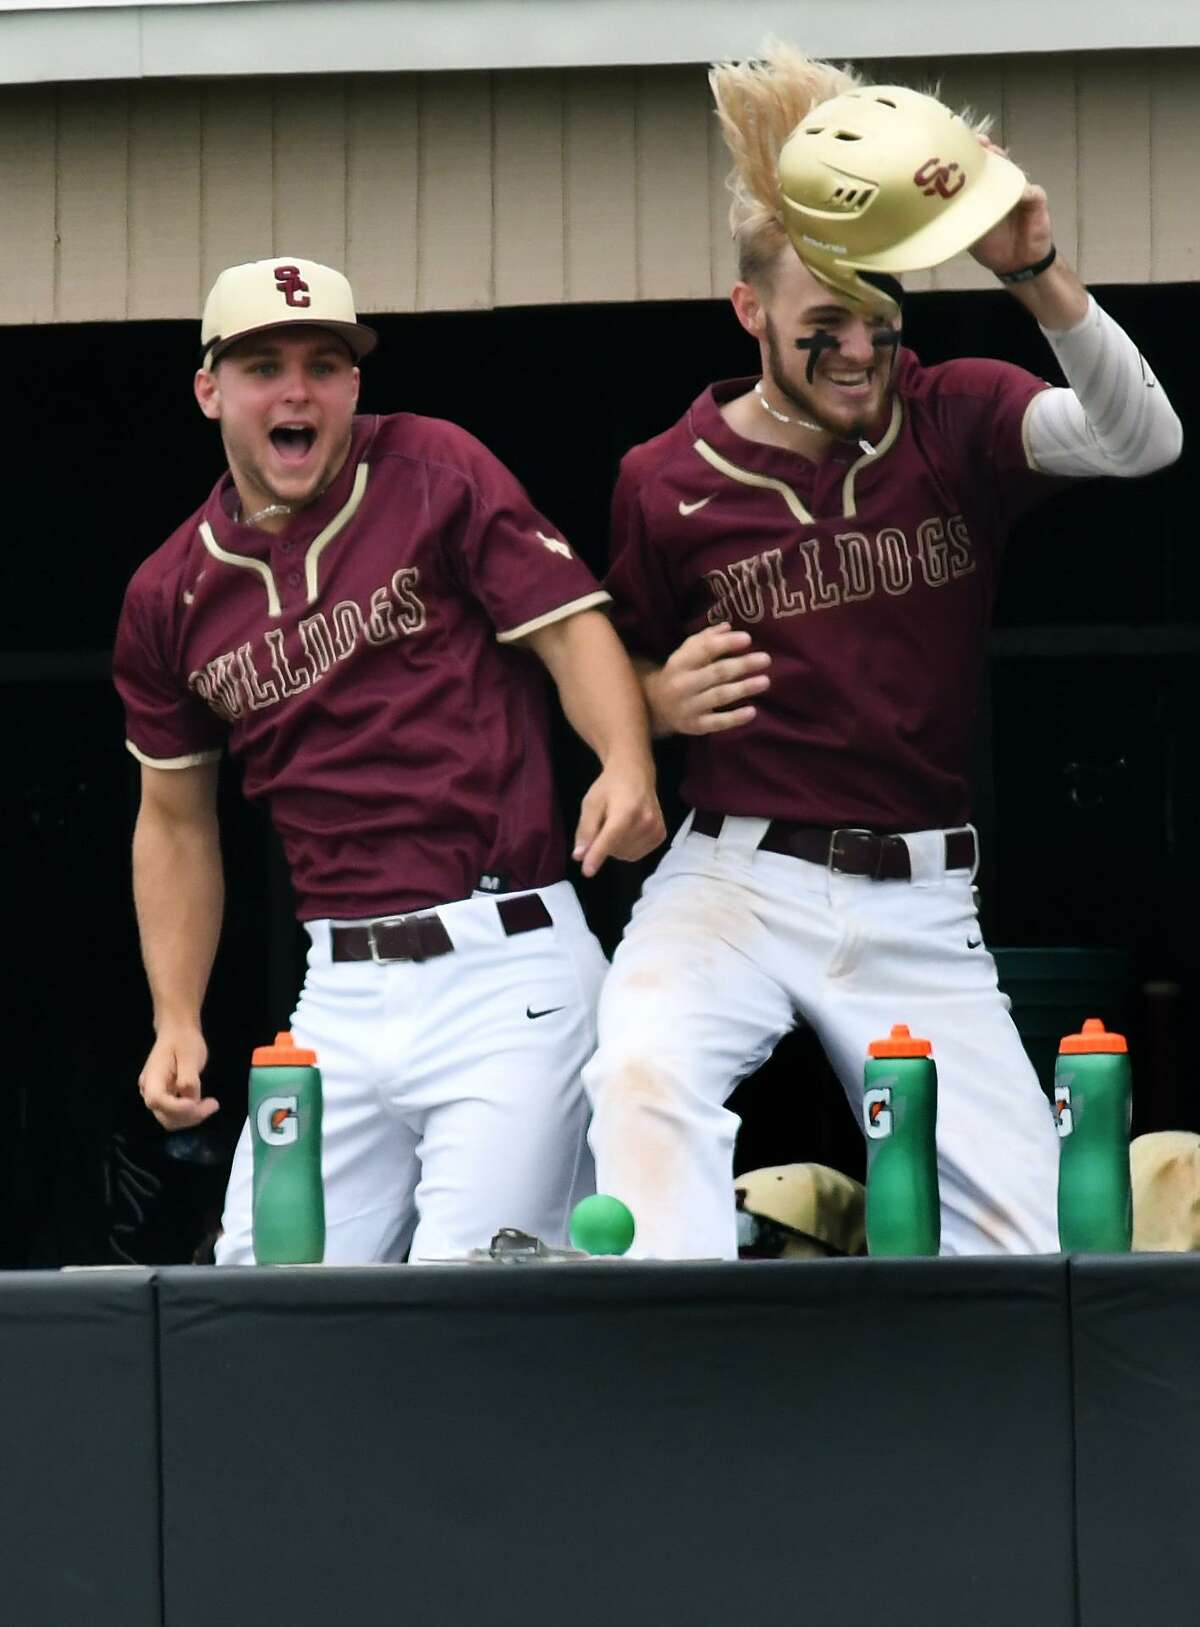 Summer Creek's Tyler Via, right, celebrates his run scored in the bottom of the 4th inning with teammate Landon Newcomb against Clear Springs during Game One of their Region II-6A Area Baseball Playoff series at Humble High School on May 10, 2019.